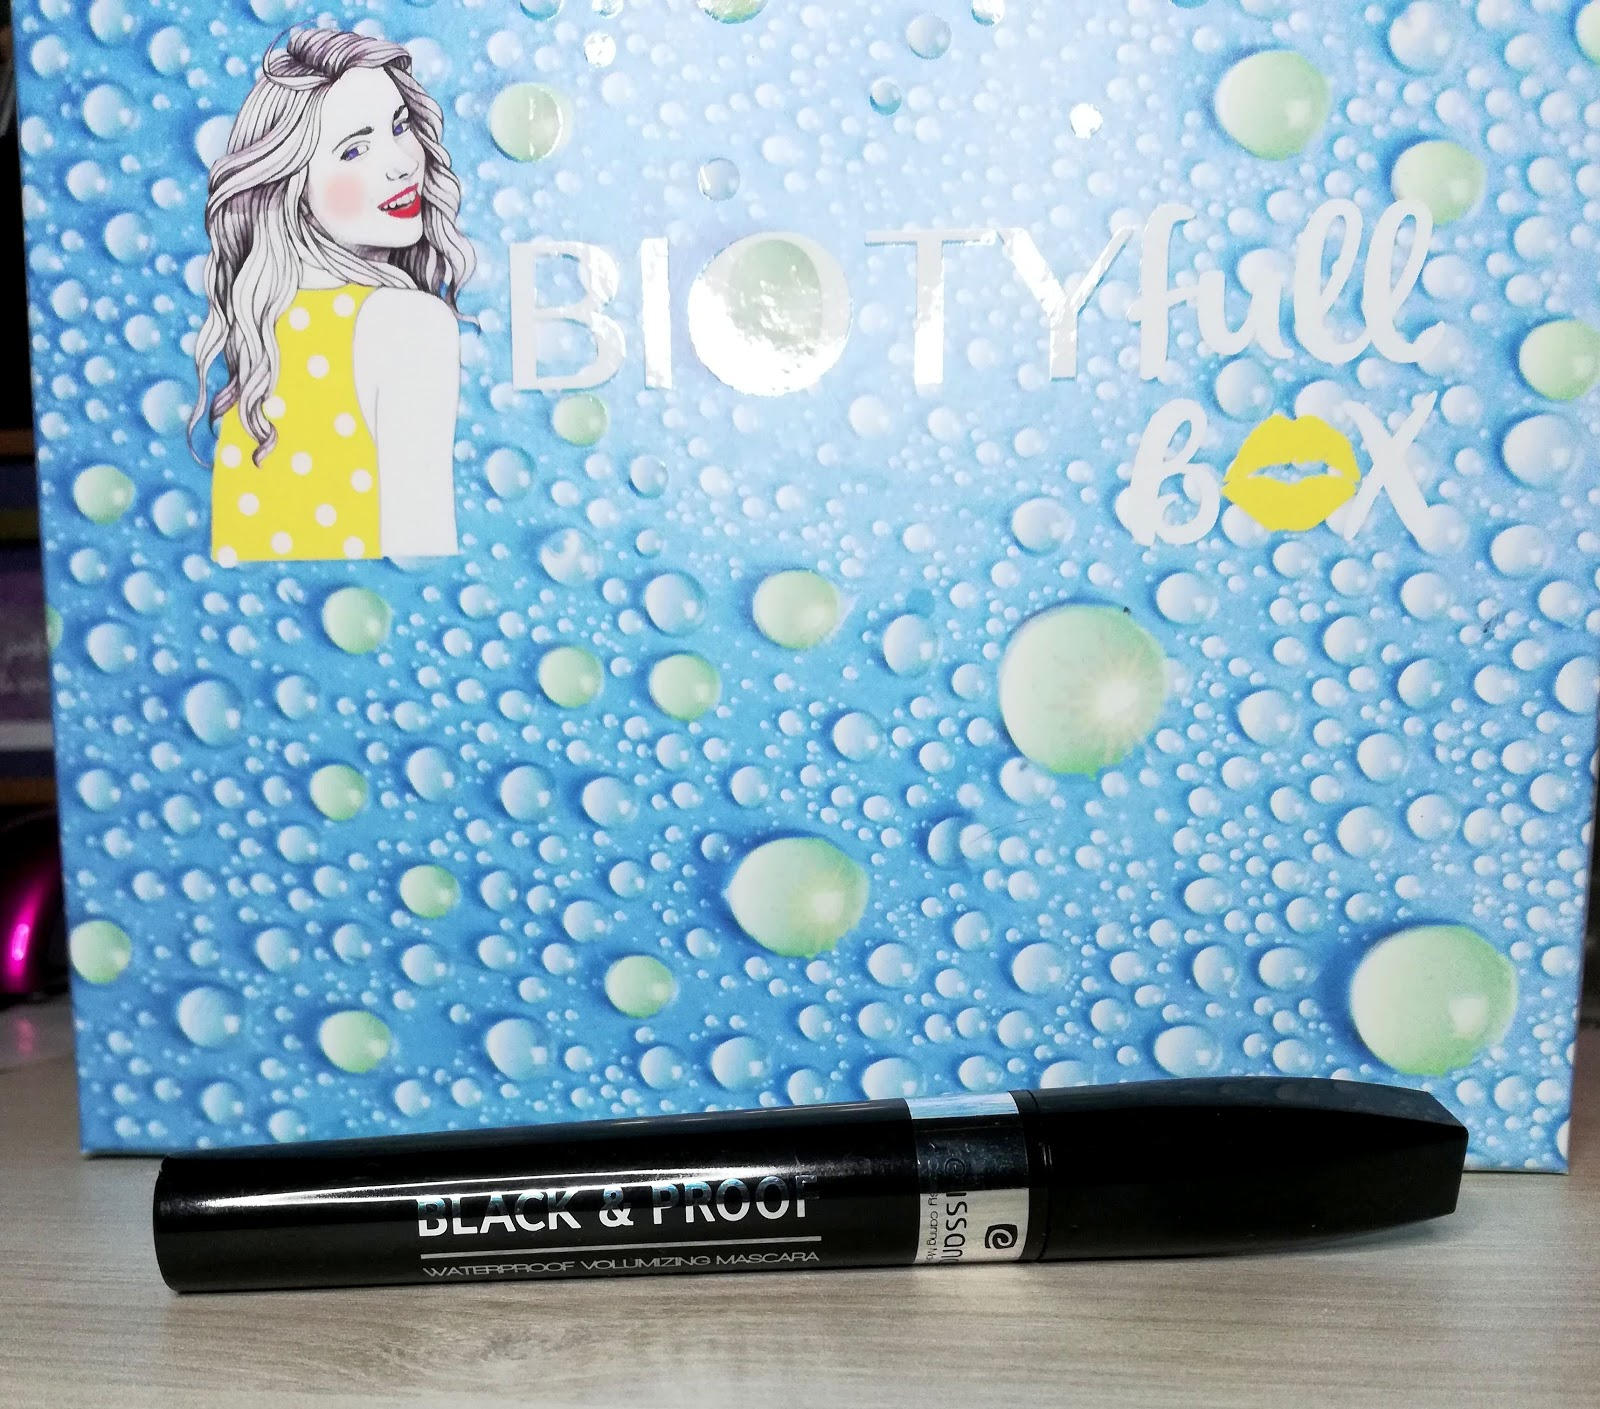 BIOTYFULL BOX Juillet 2019 : la Waterproof! 🌊